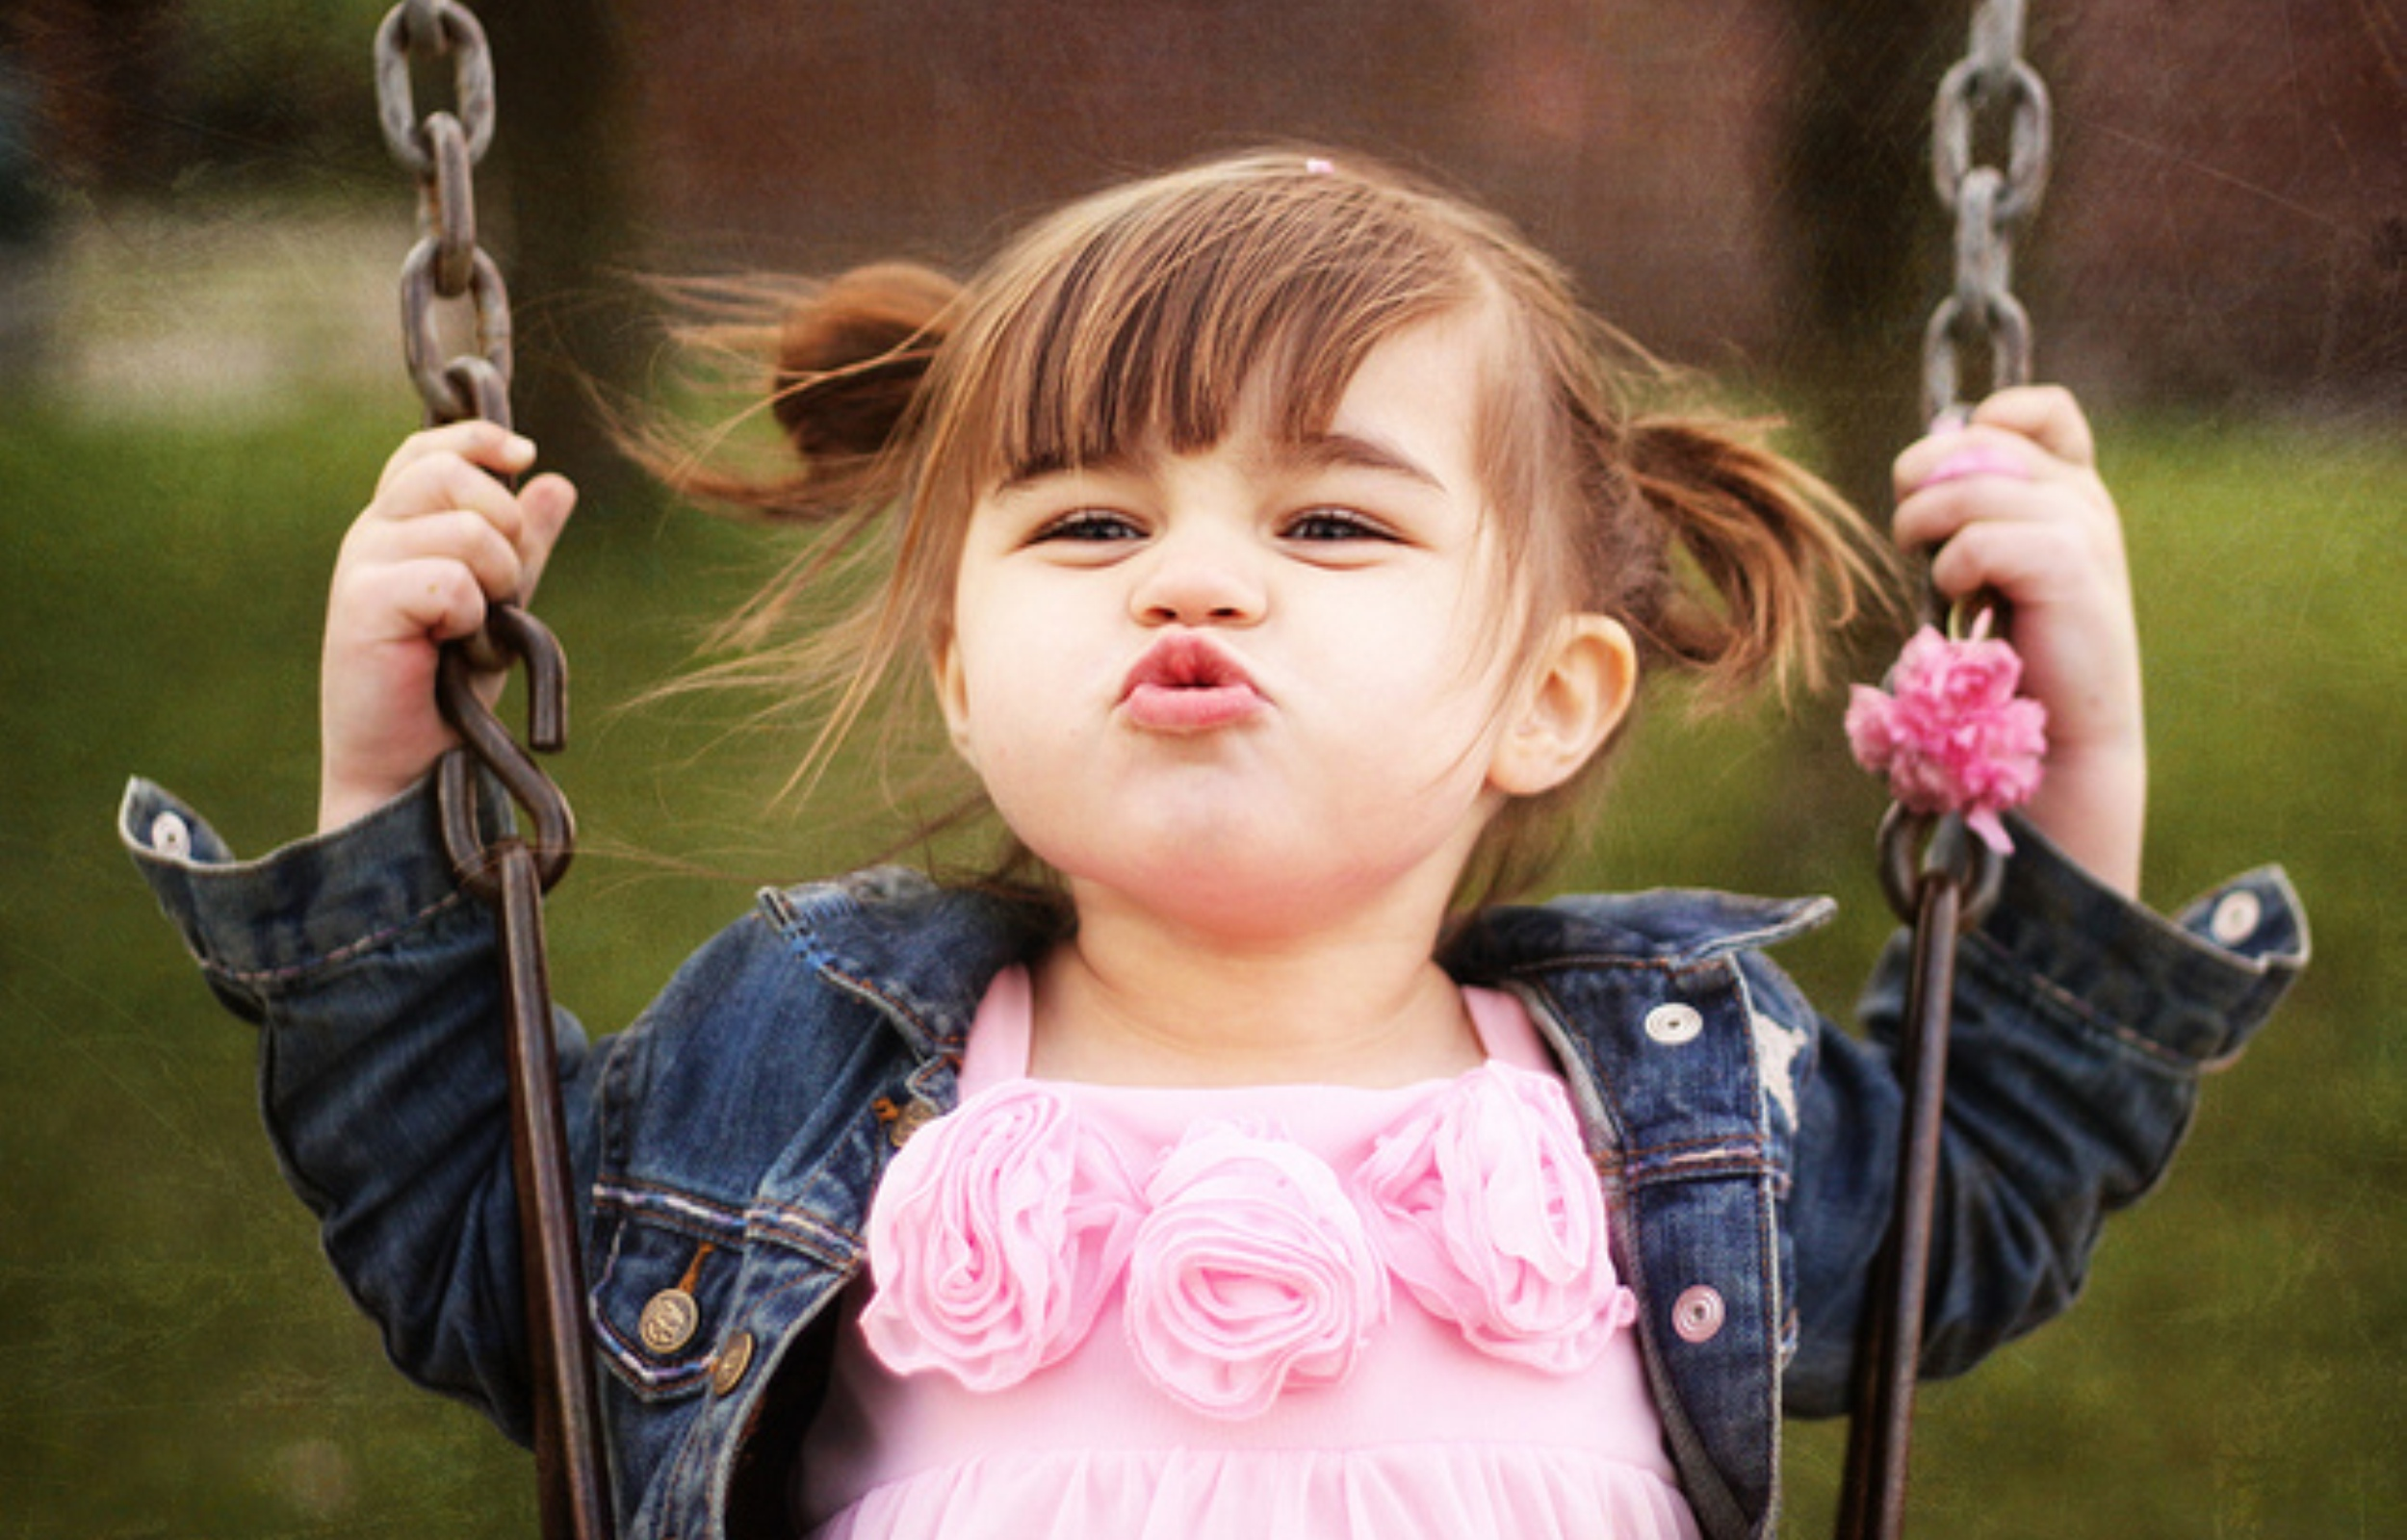 Cute-Baby-Girl-HD-Background-183